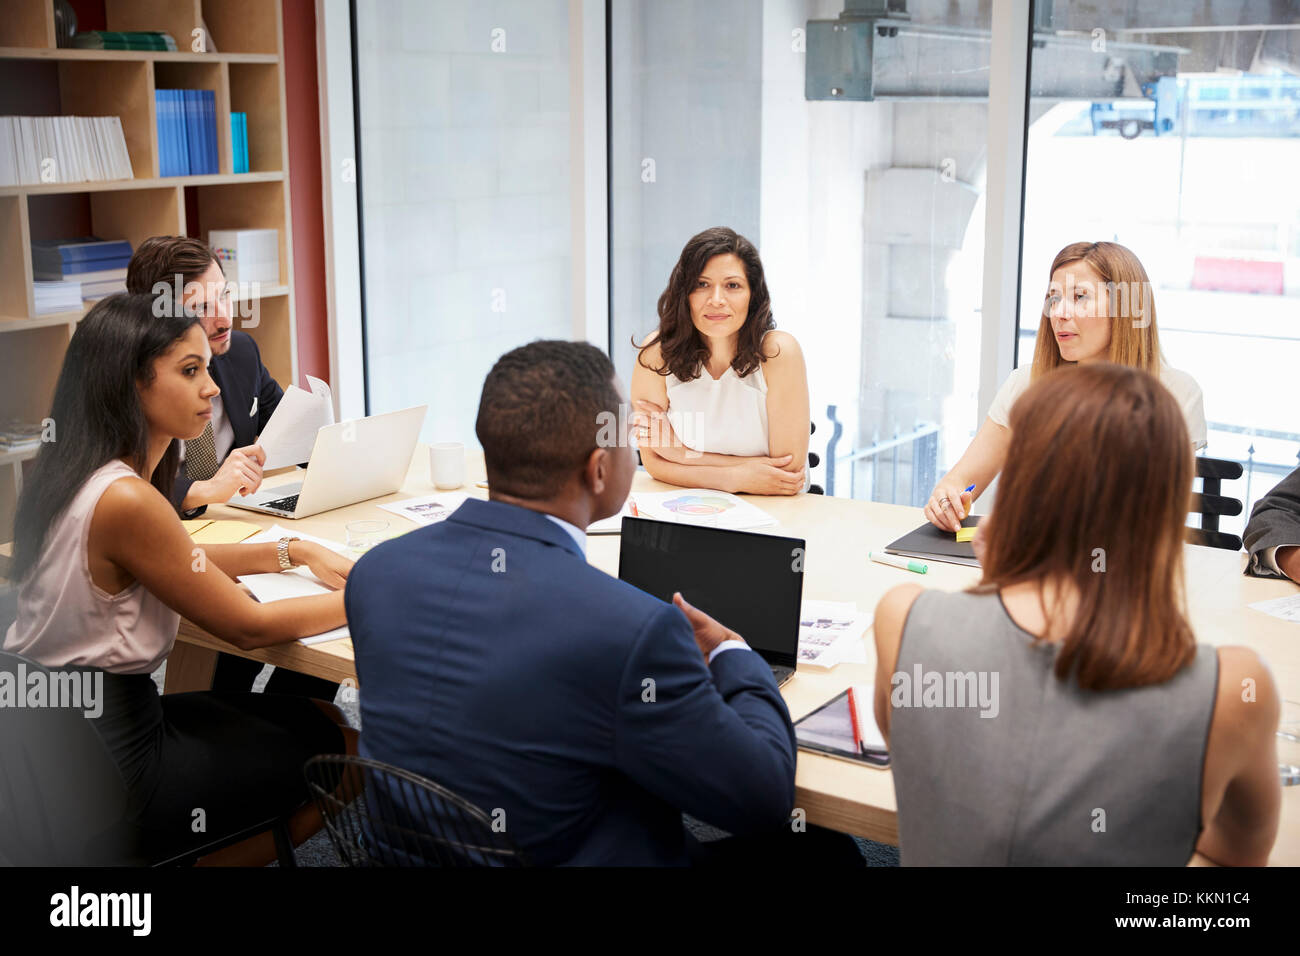 Medium group of people at a boardroom meeting - Stock Image